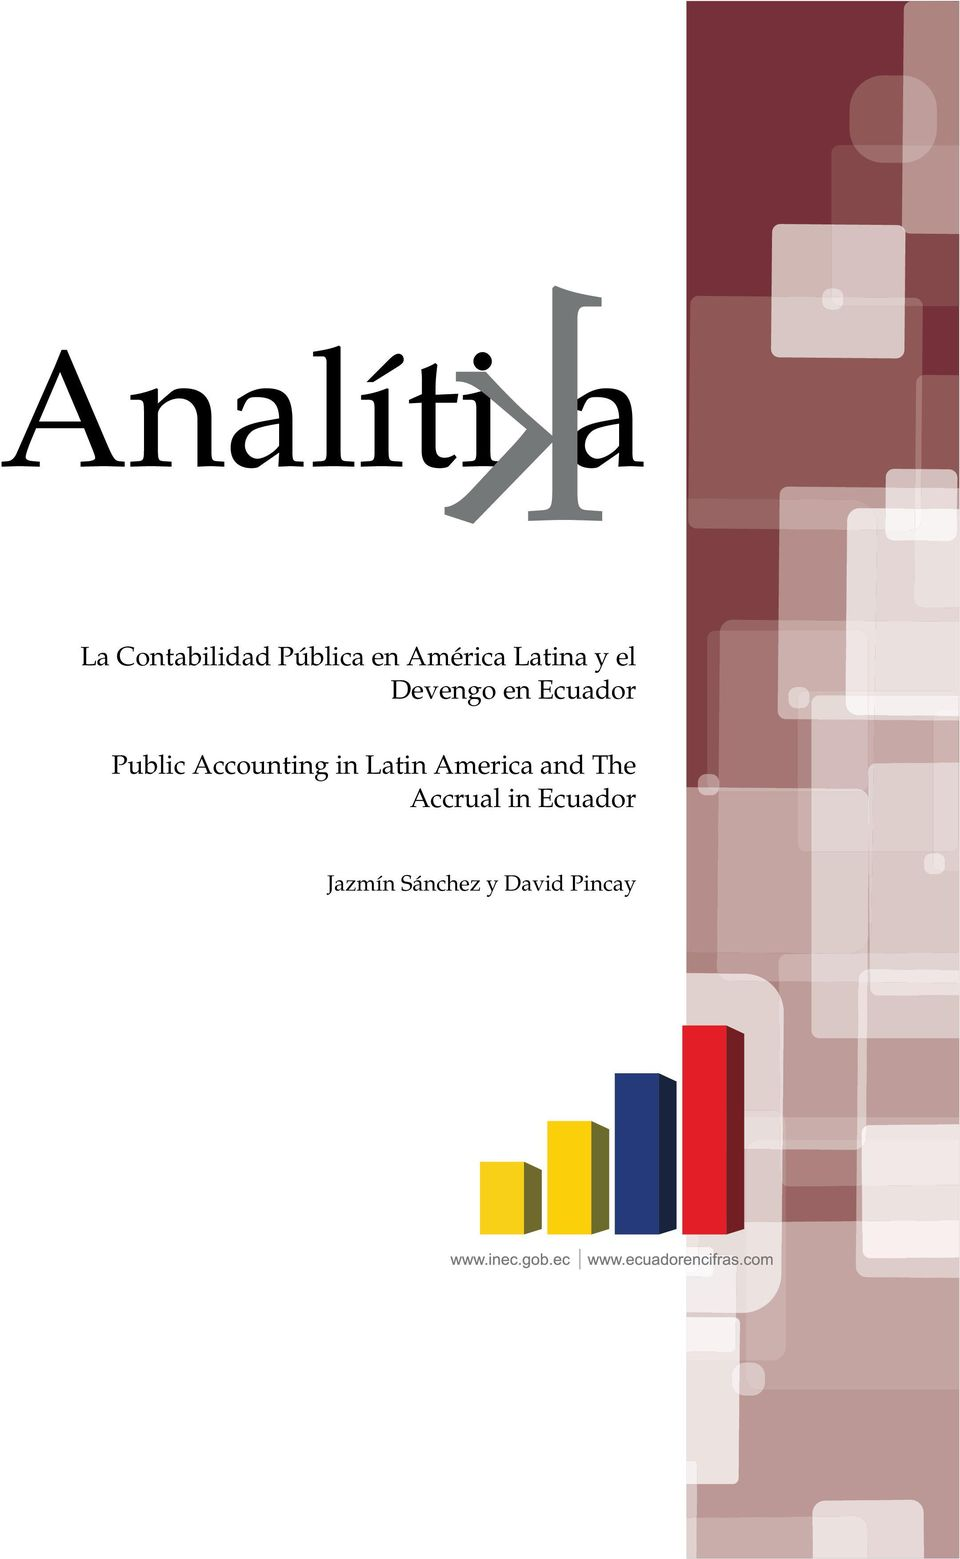 Public Accounting in Latin America and